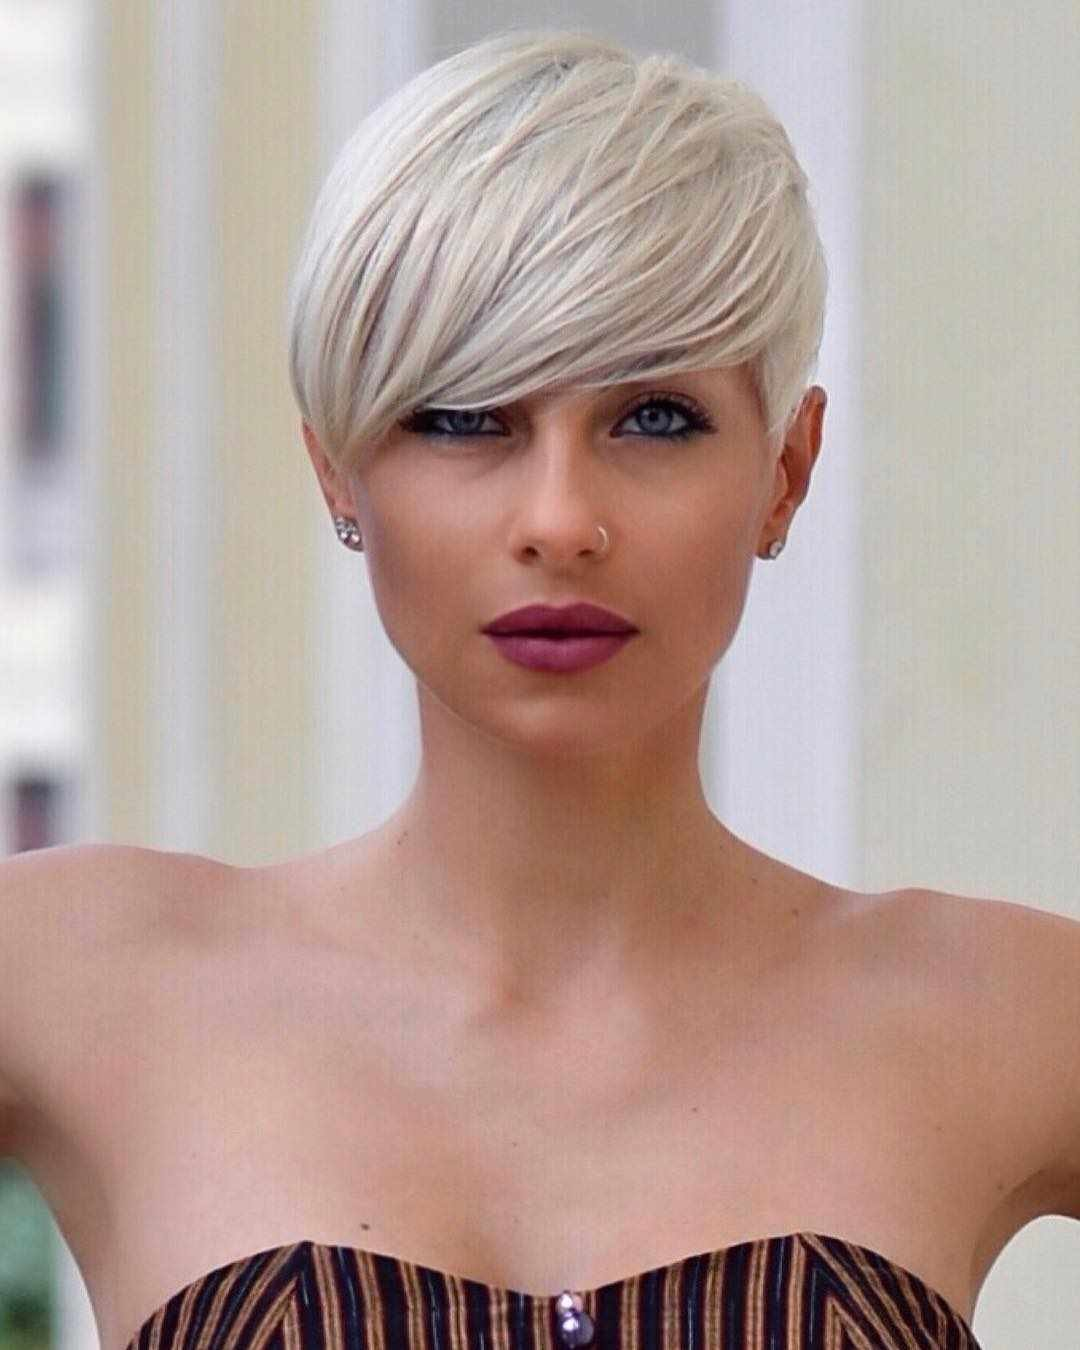 New Hot Short Hairstyles For Women In 2019 » Short Hairstyles Ideas With Pictures